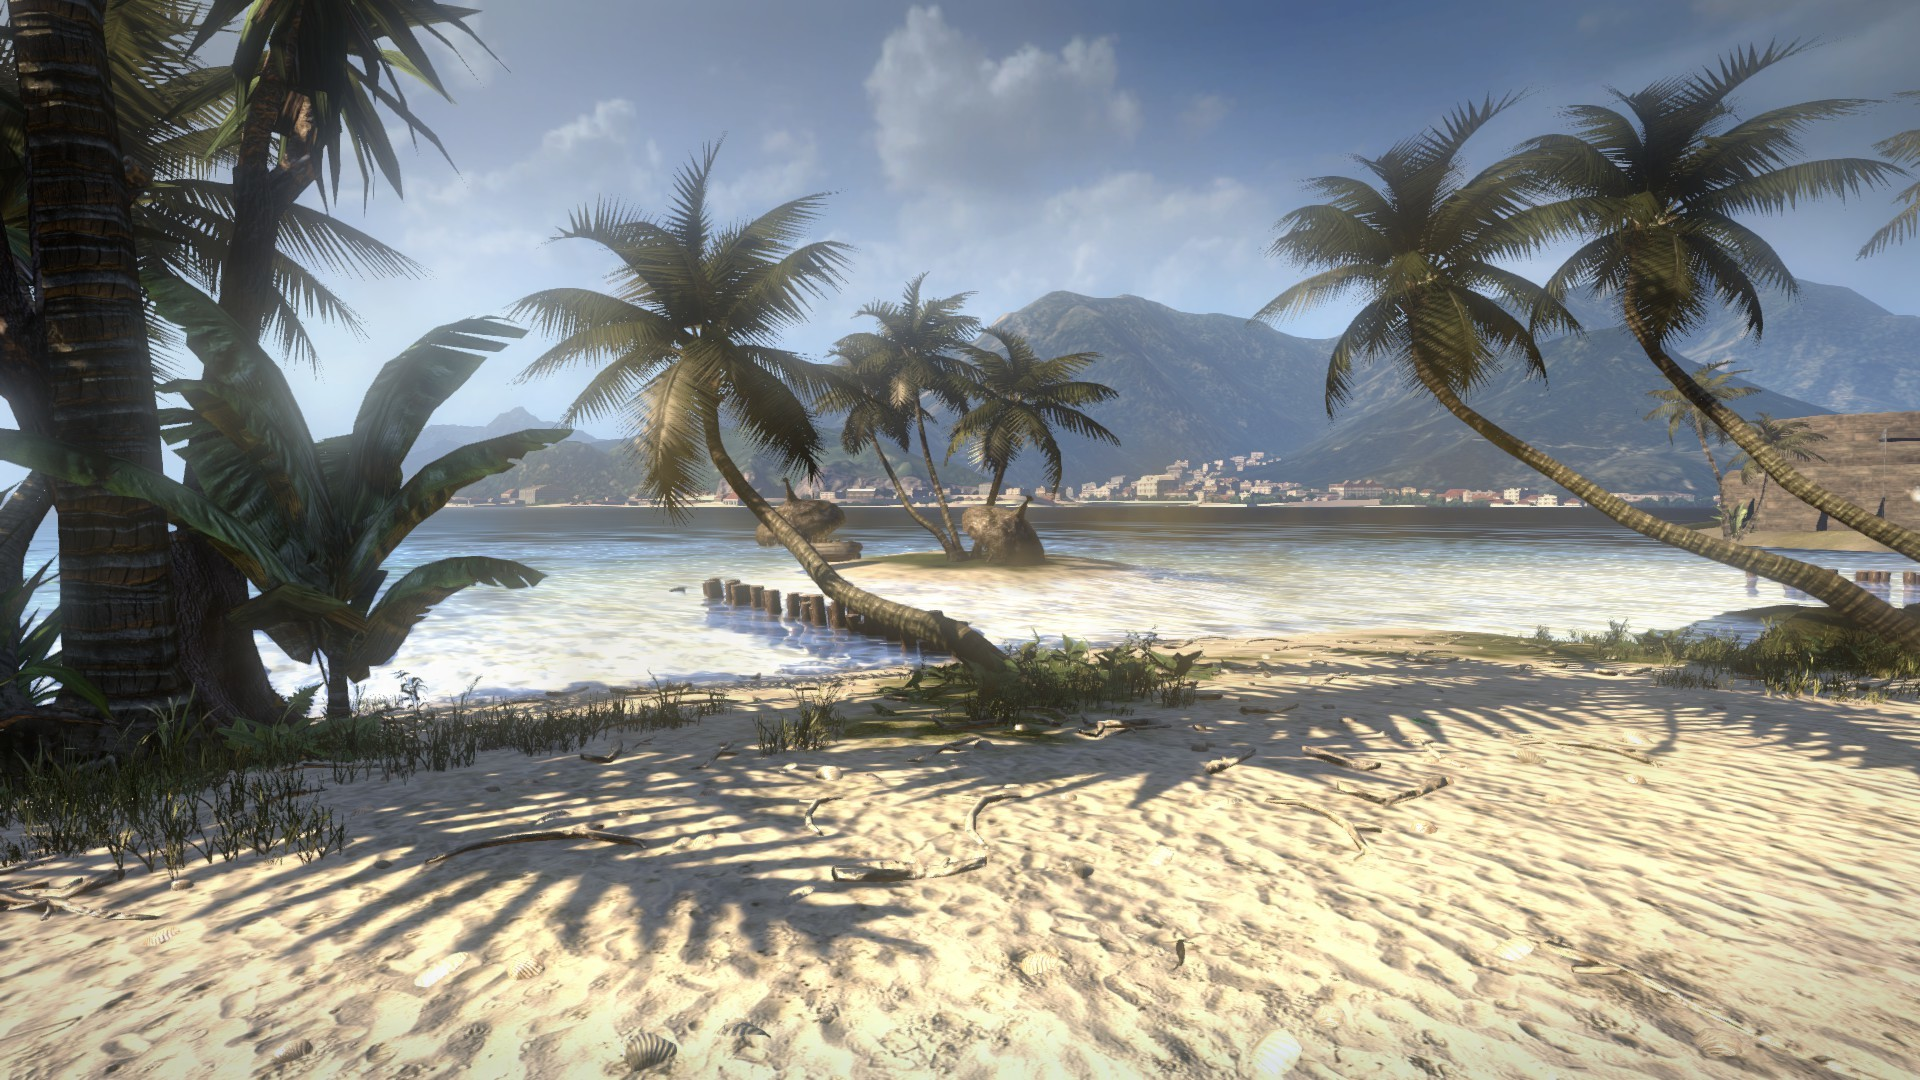 Dead island wallpaper 88 images 1920x1080 free dead island wallpaper in 1920x1080 voltagebd Choice Image